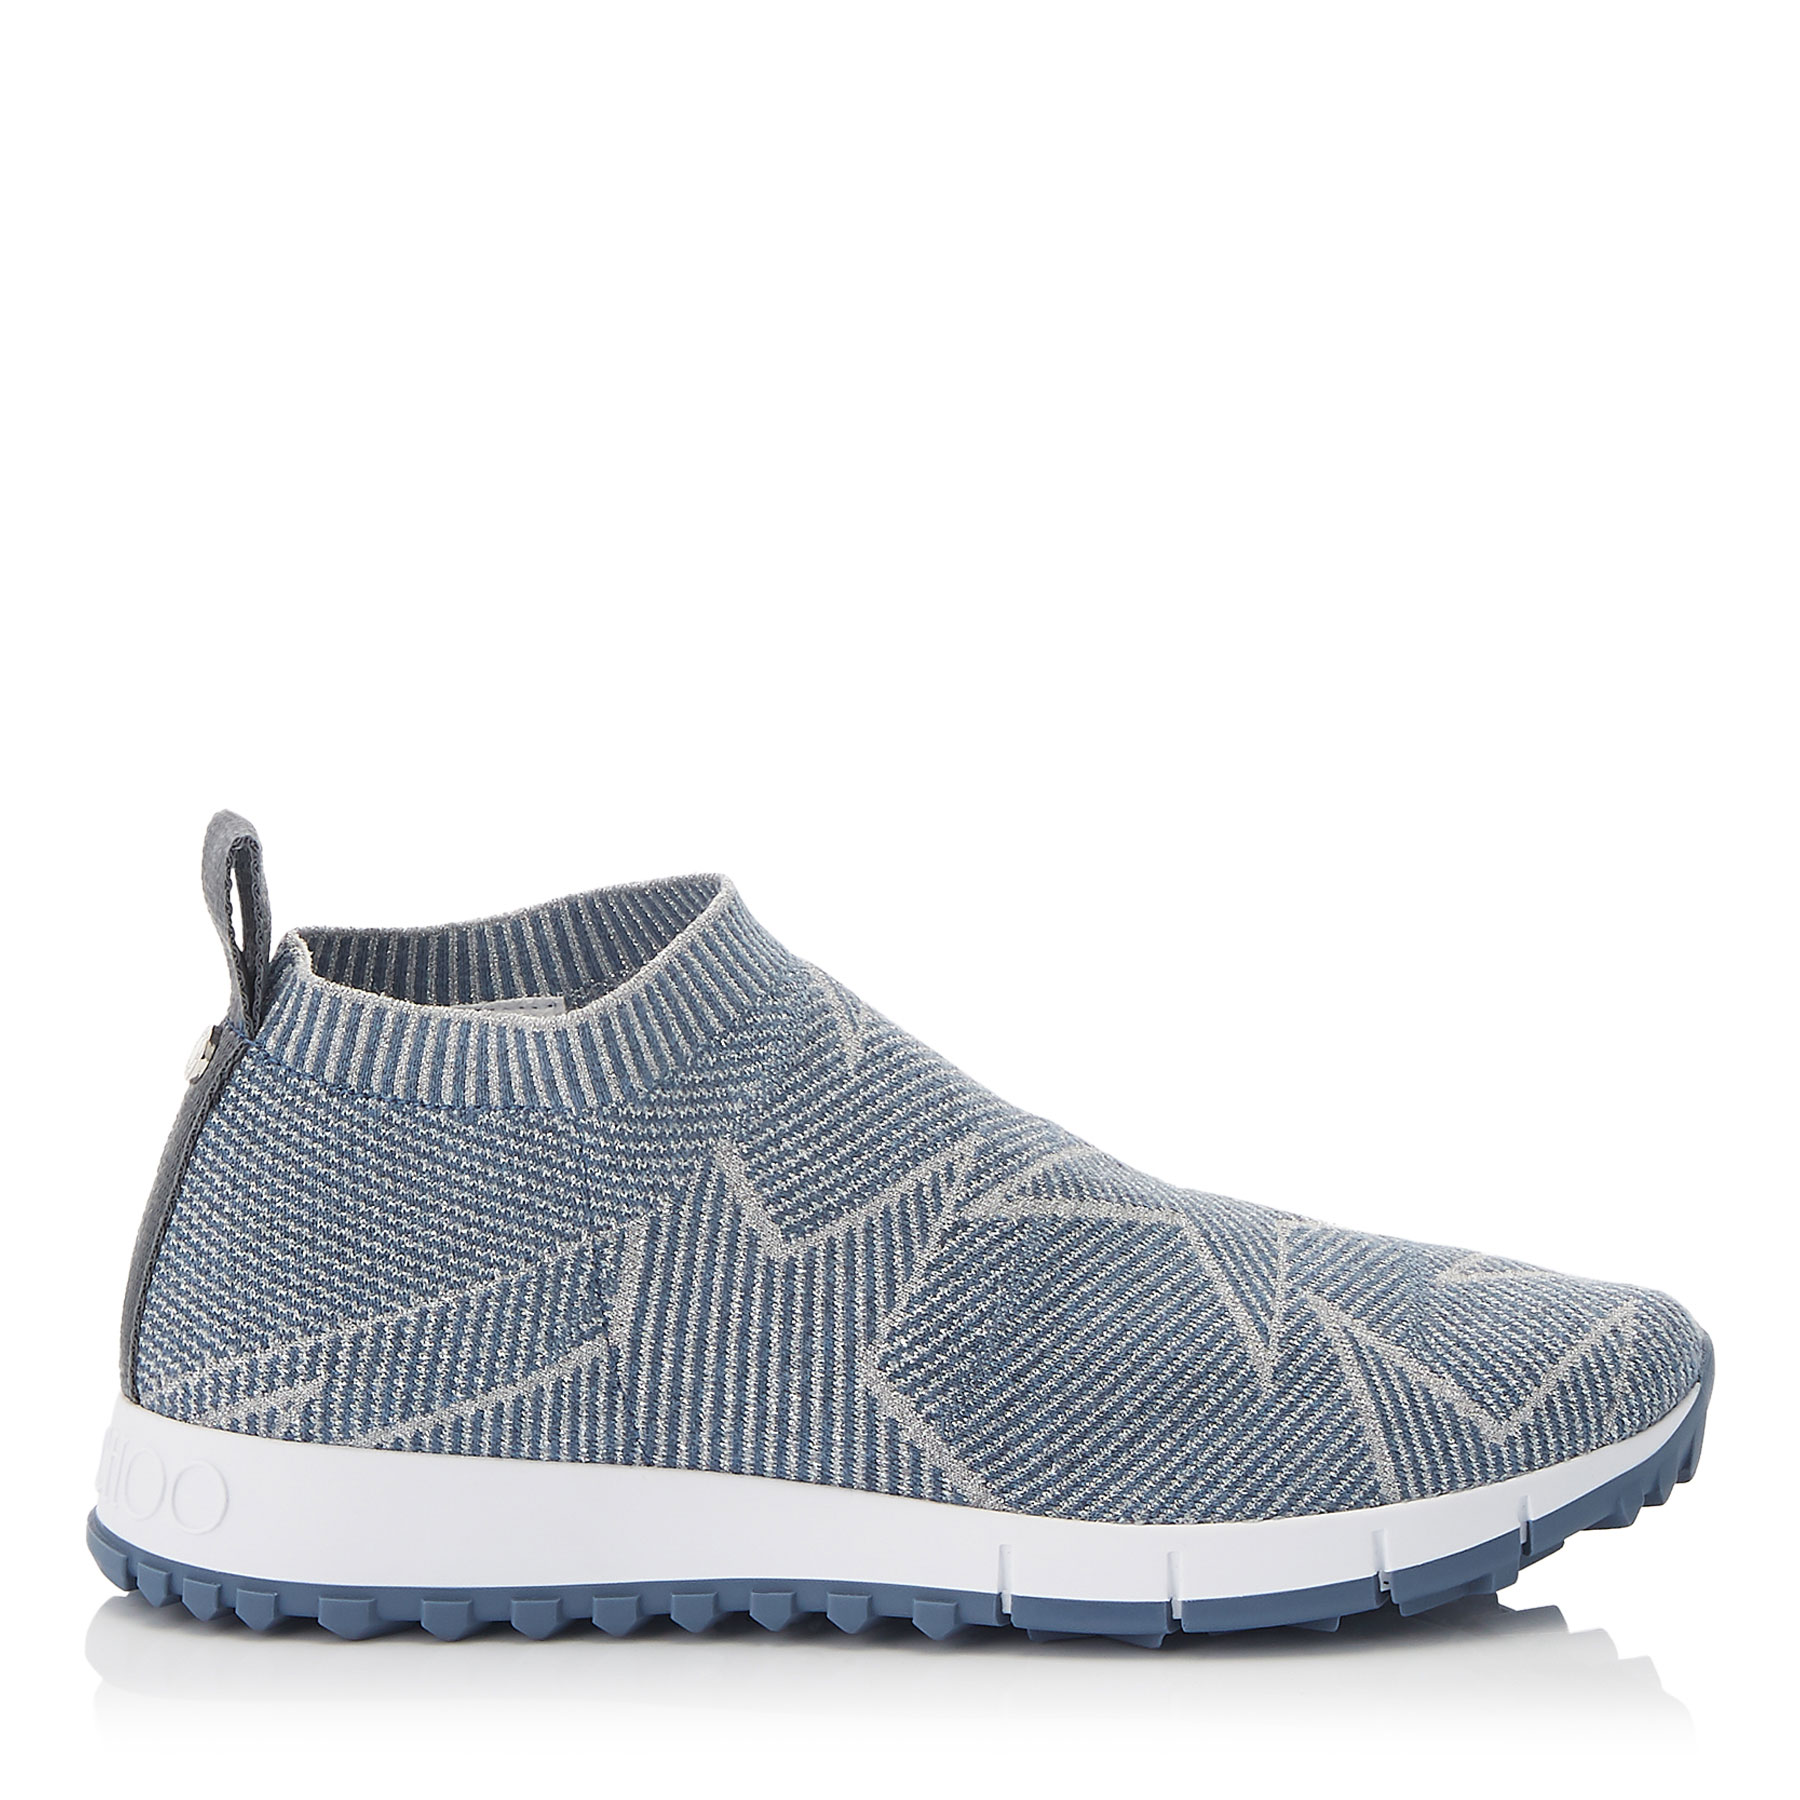 NORWAY Dusk Blue Knit and Silver Lurex Trainers by Jimmy Choo